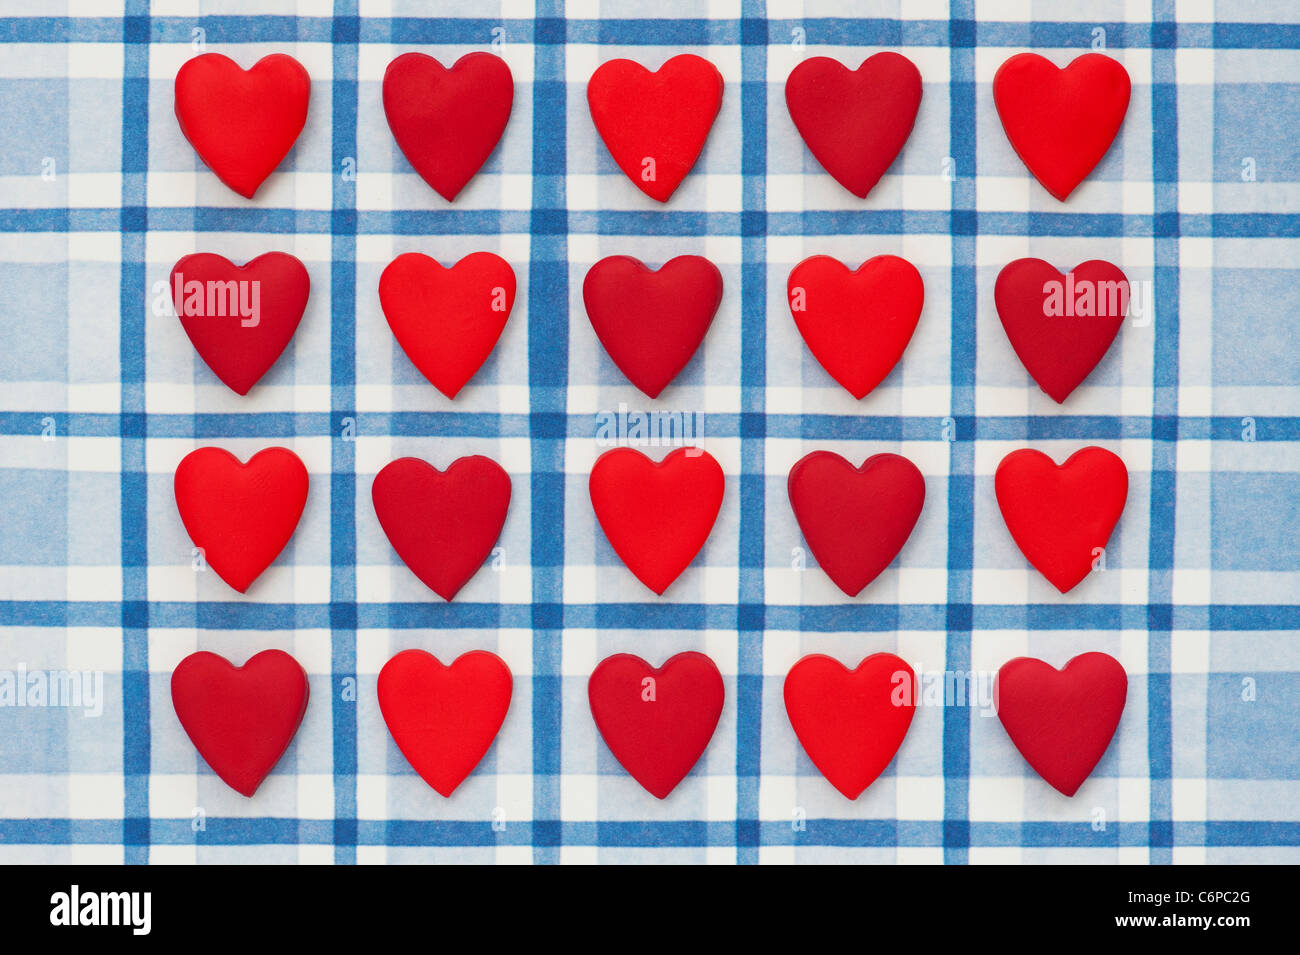 Red coloured love hearts on a blue chequered background - Stock Image